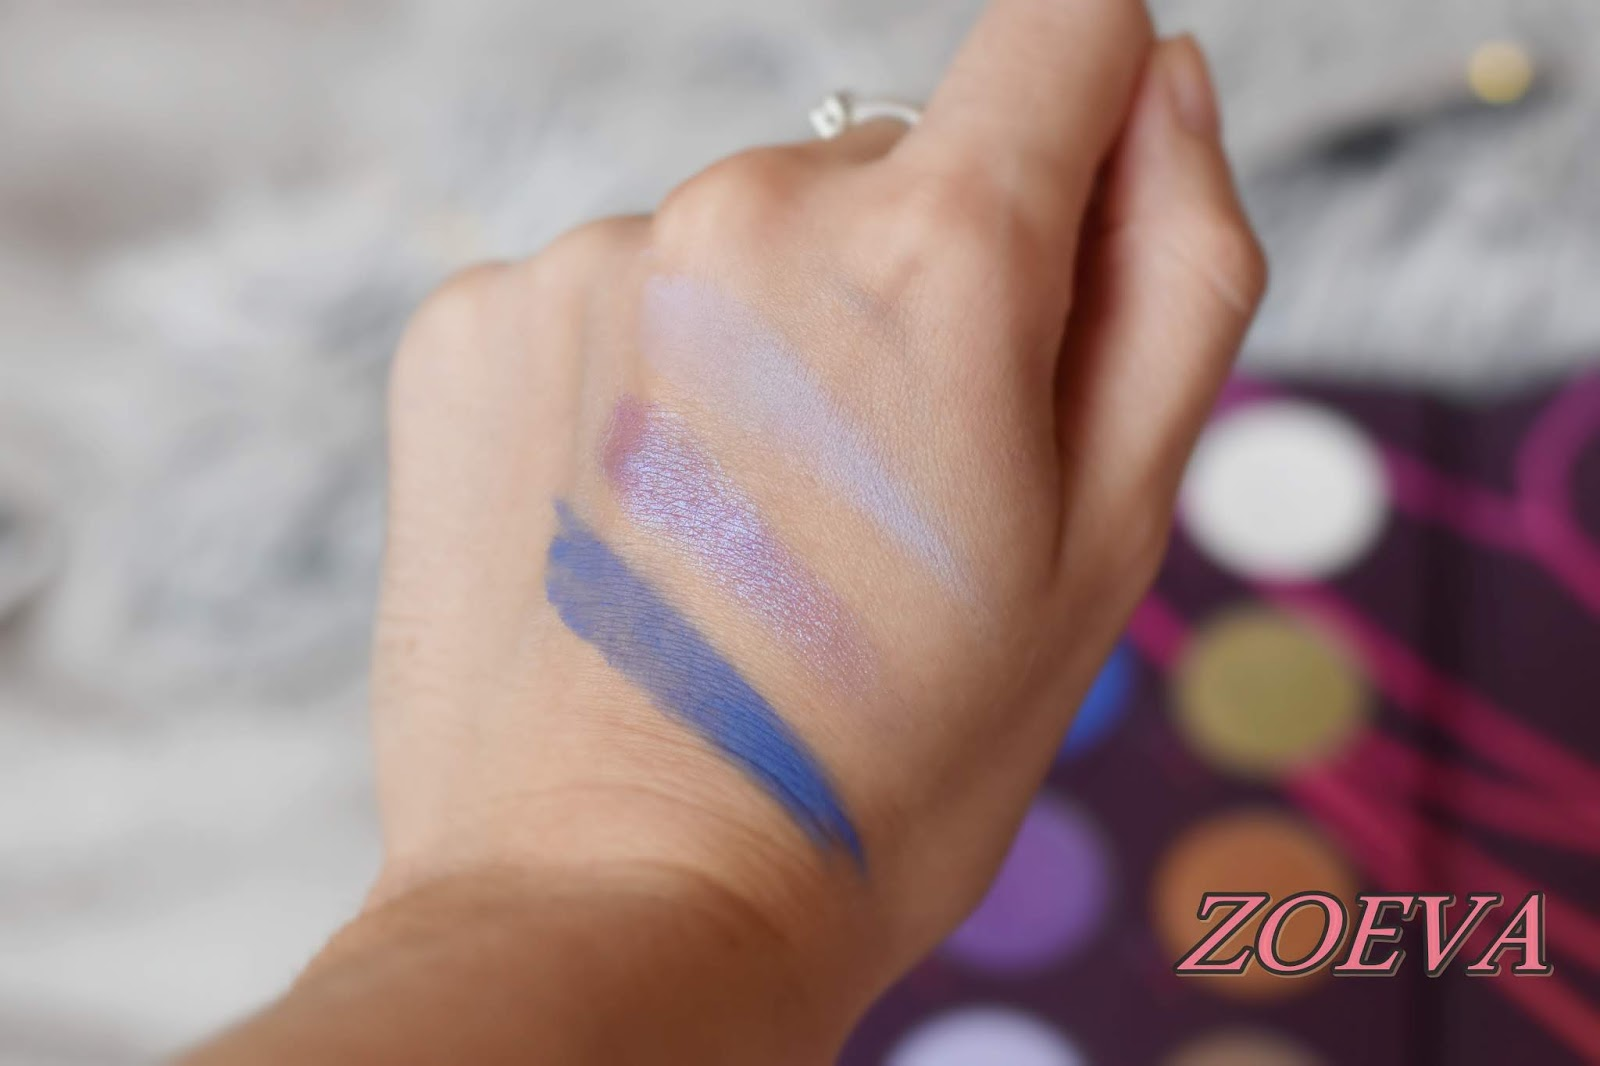 zoeva retro future swatches